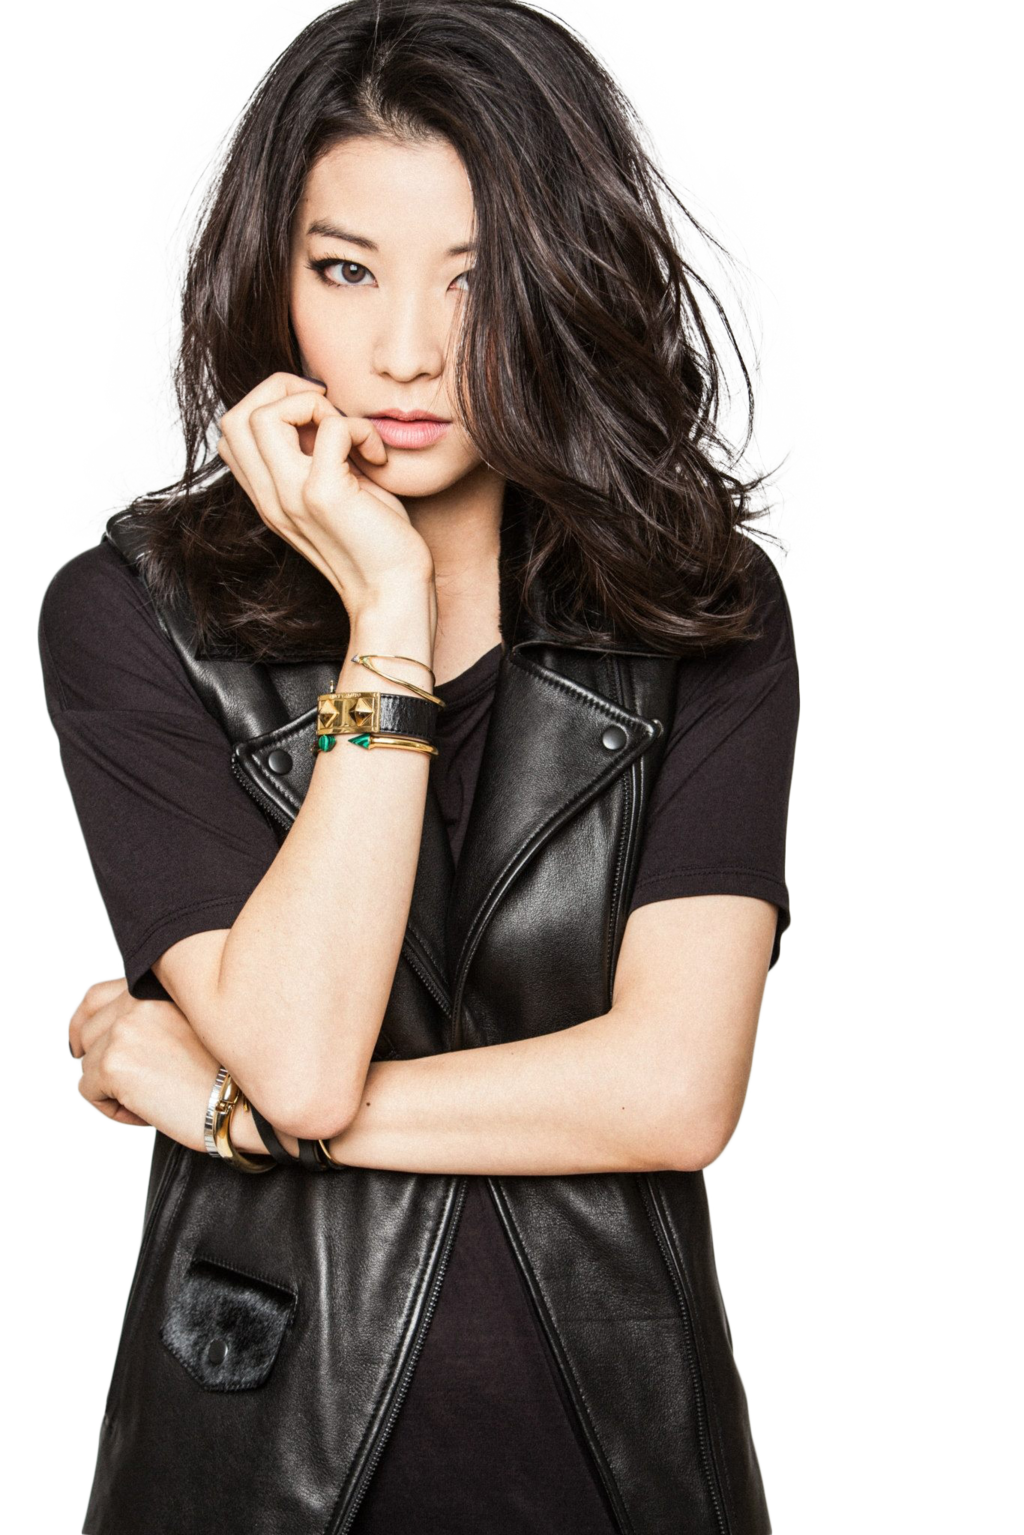 1024x1535 - Arden Cho Wallpapers 22